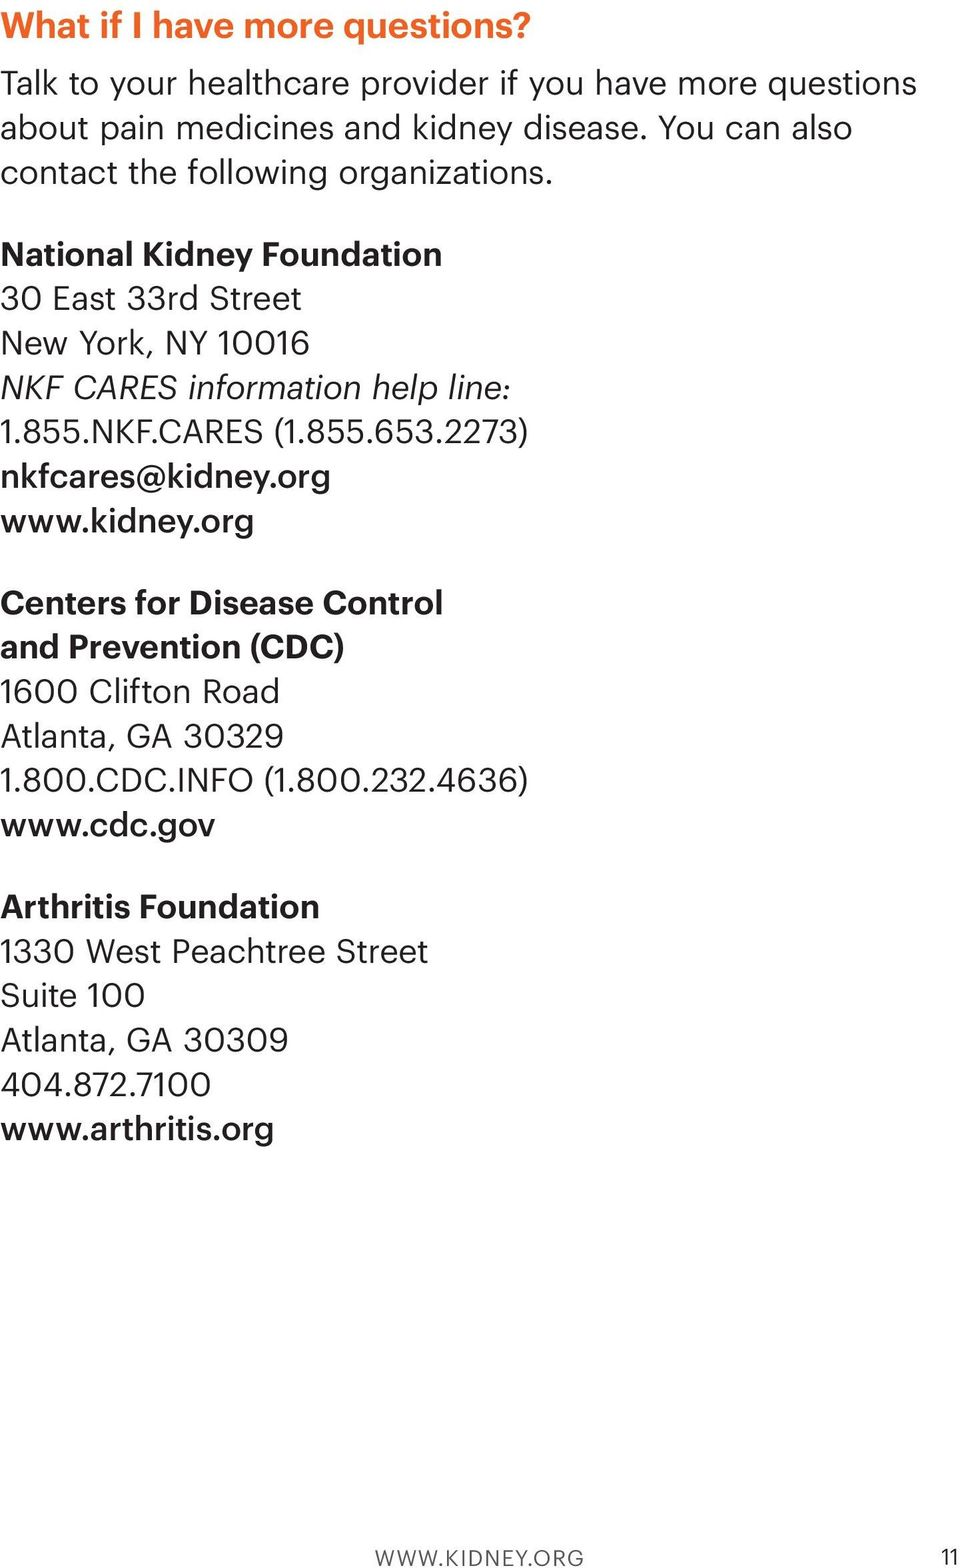 855.NKF.CARES (1.855.653.2273) nkfcares@kidney.org www.kidney.org Centers for Disease Control and Prevention (CDC) 1600 Clifton Road Atlanta, GA 30329 1.